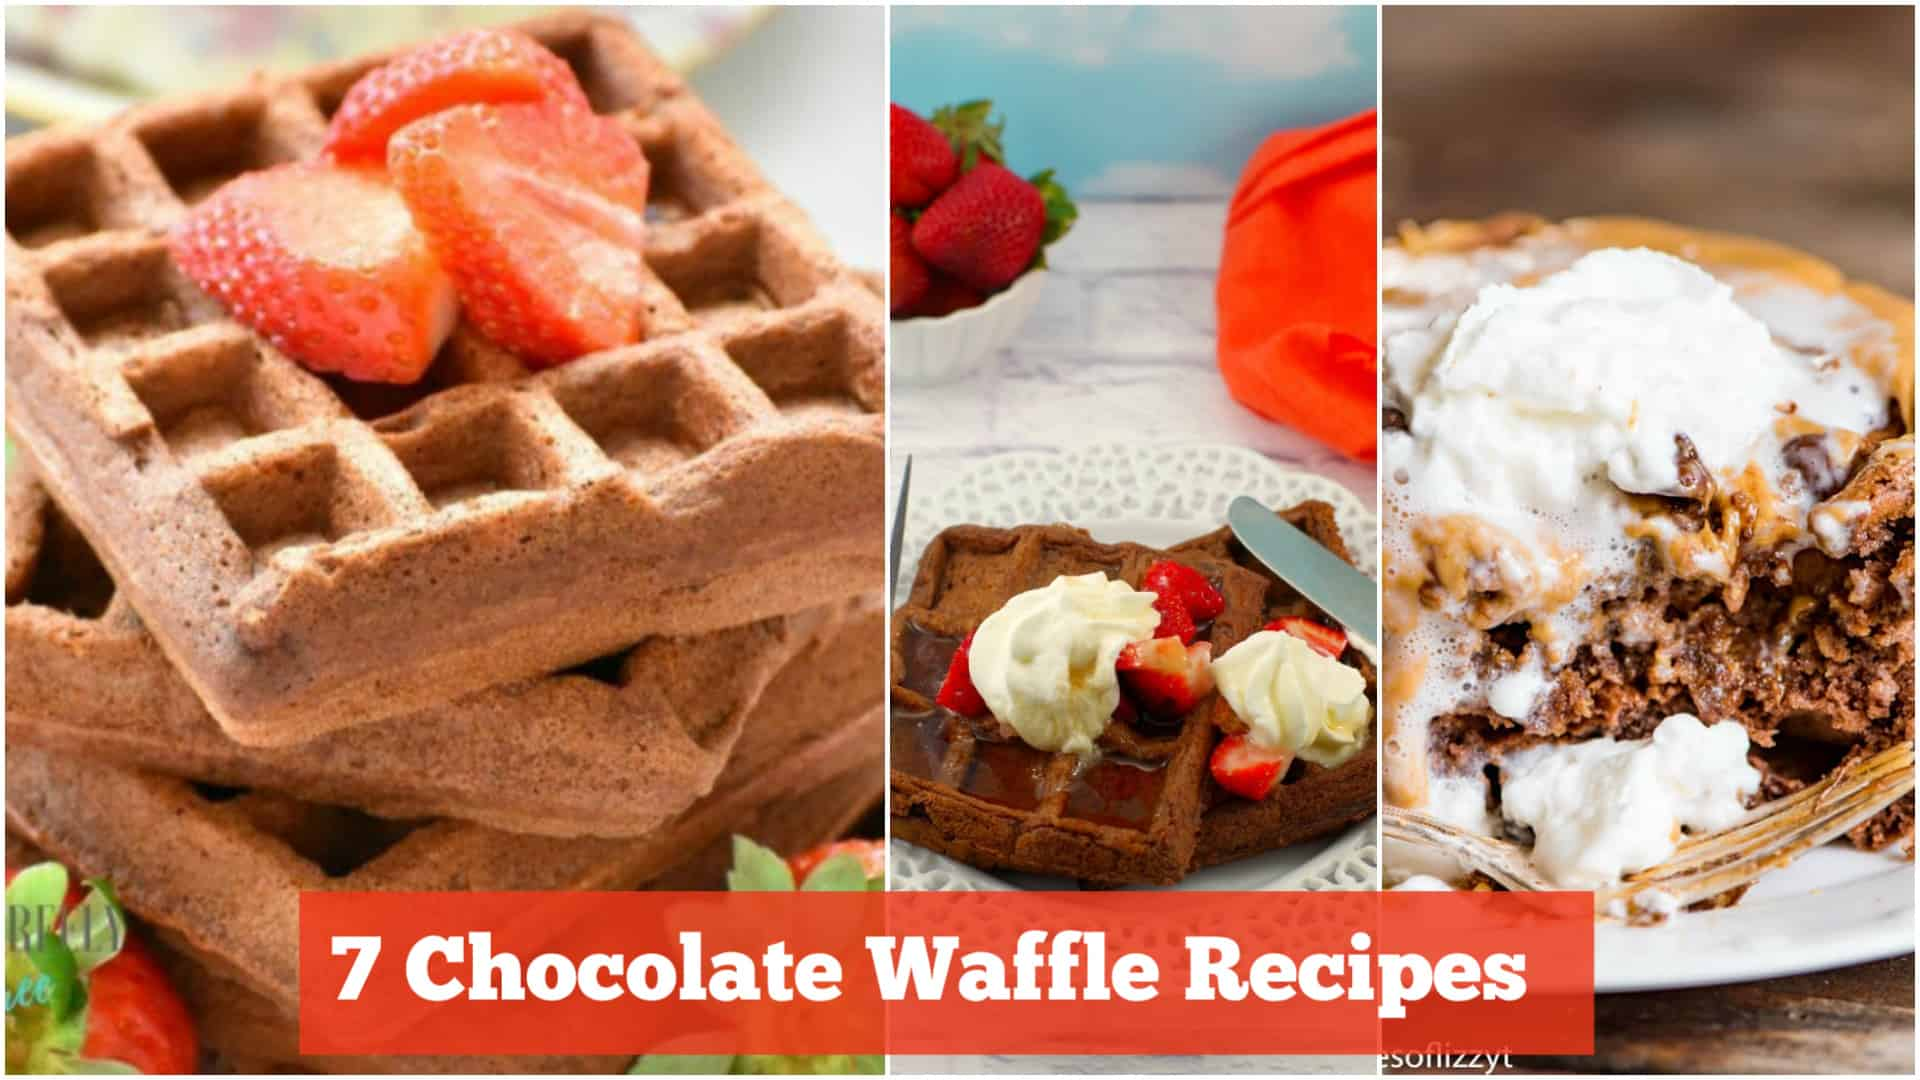 7 Delicious Chocolate Waffle Recipes Made From Scratch